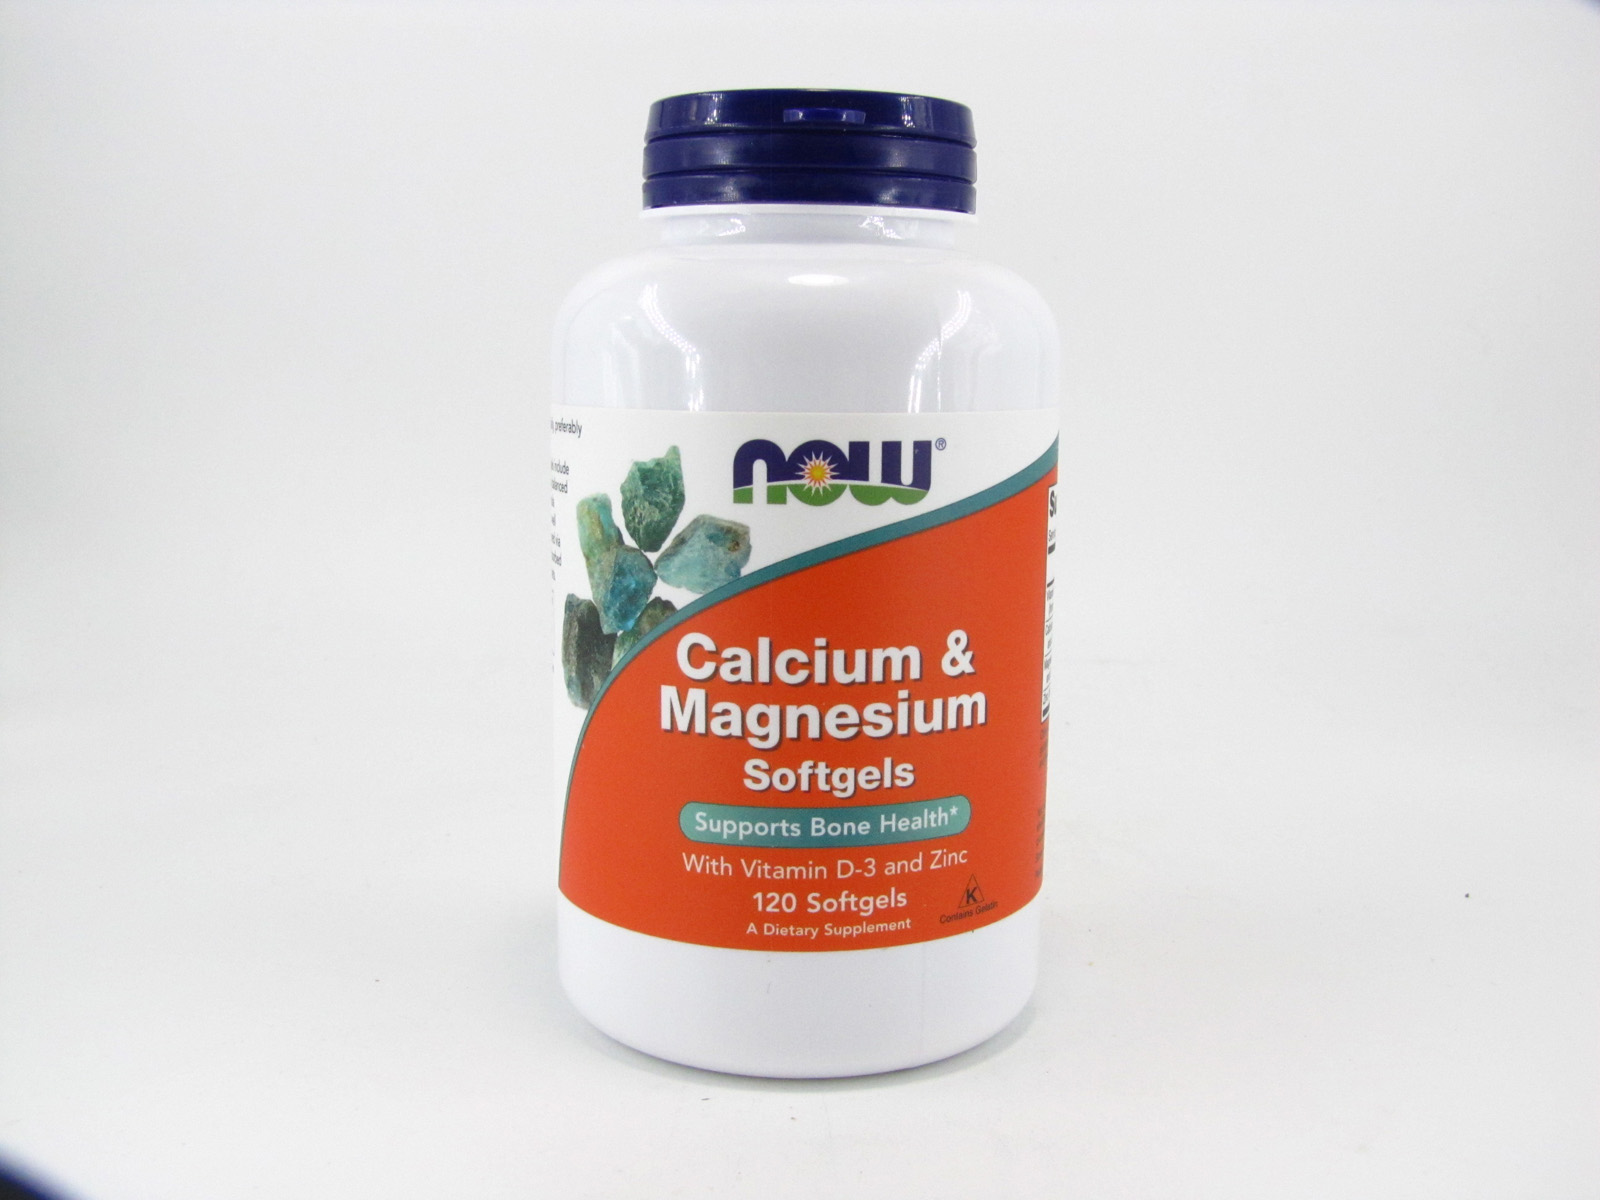 Calcium & Magnesium Softgels - front view